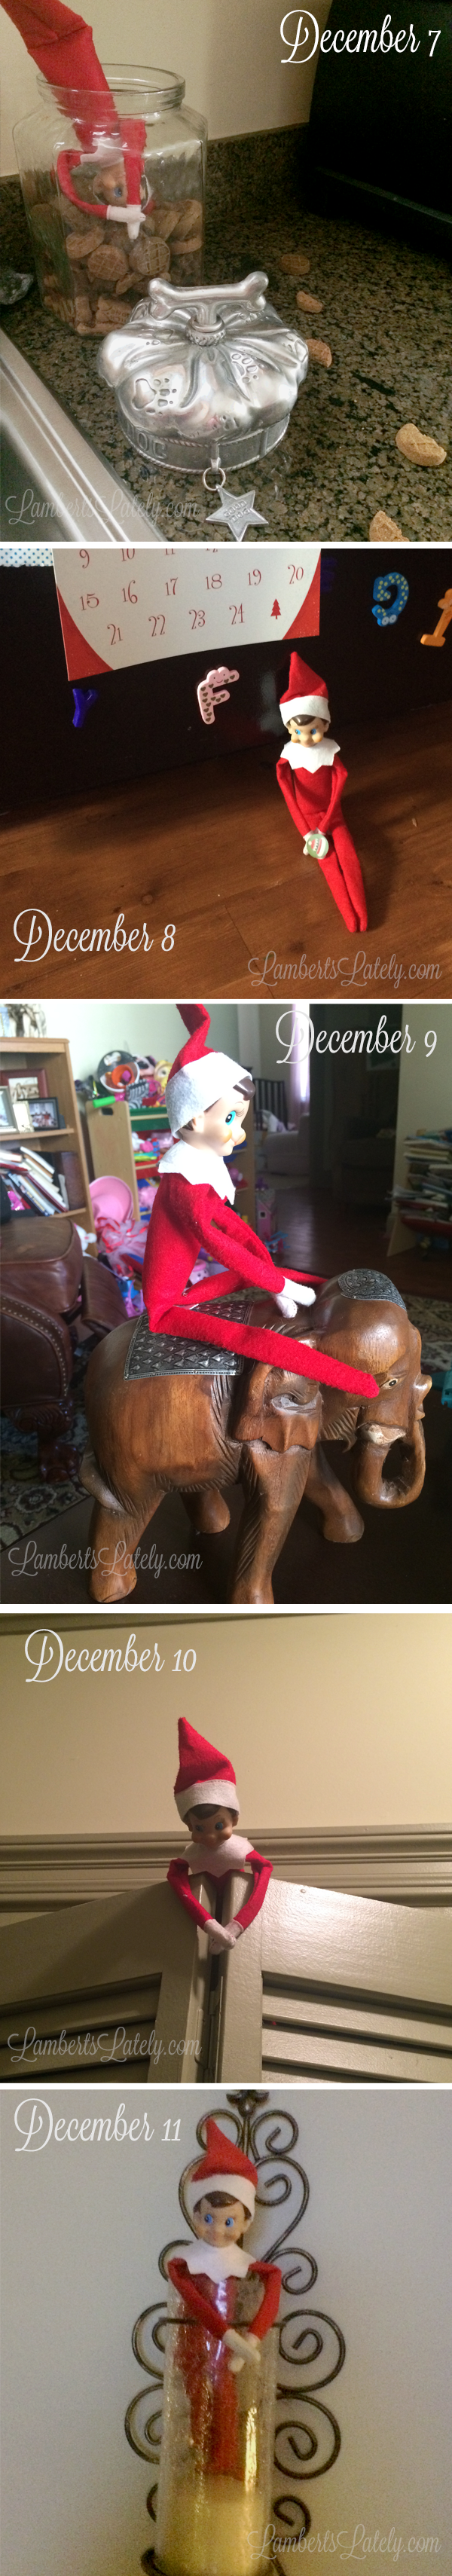 The Many Adventures of Eddie the Elf...a few of the hijinks of our Elf on the Shelf (plus a few ideas for you!)